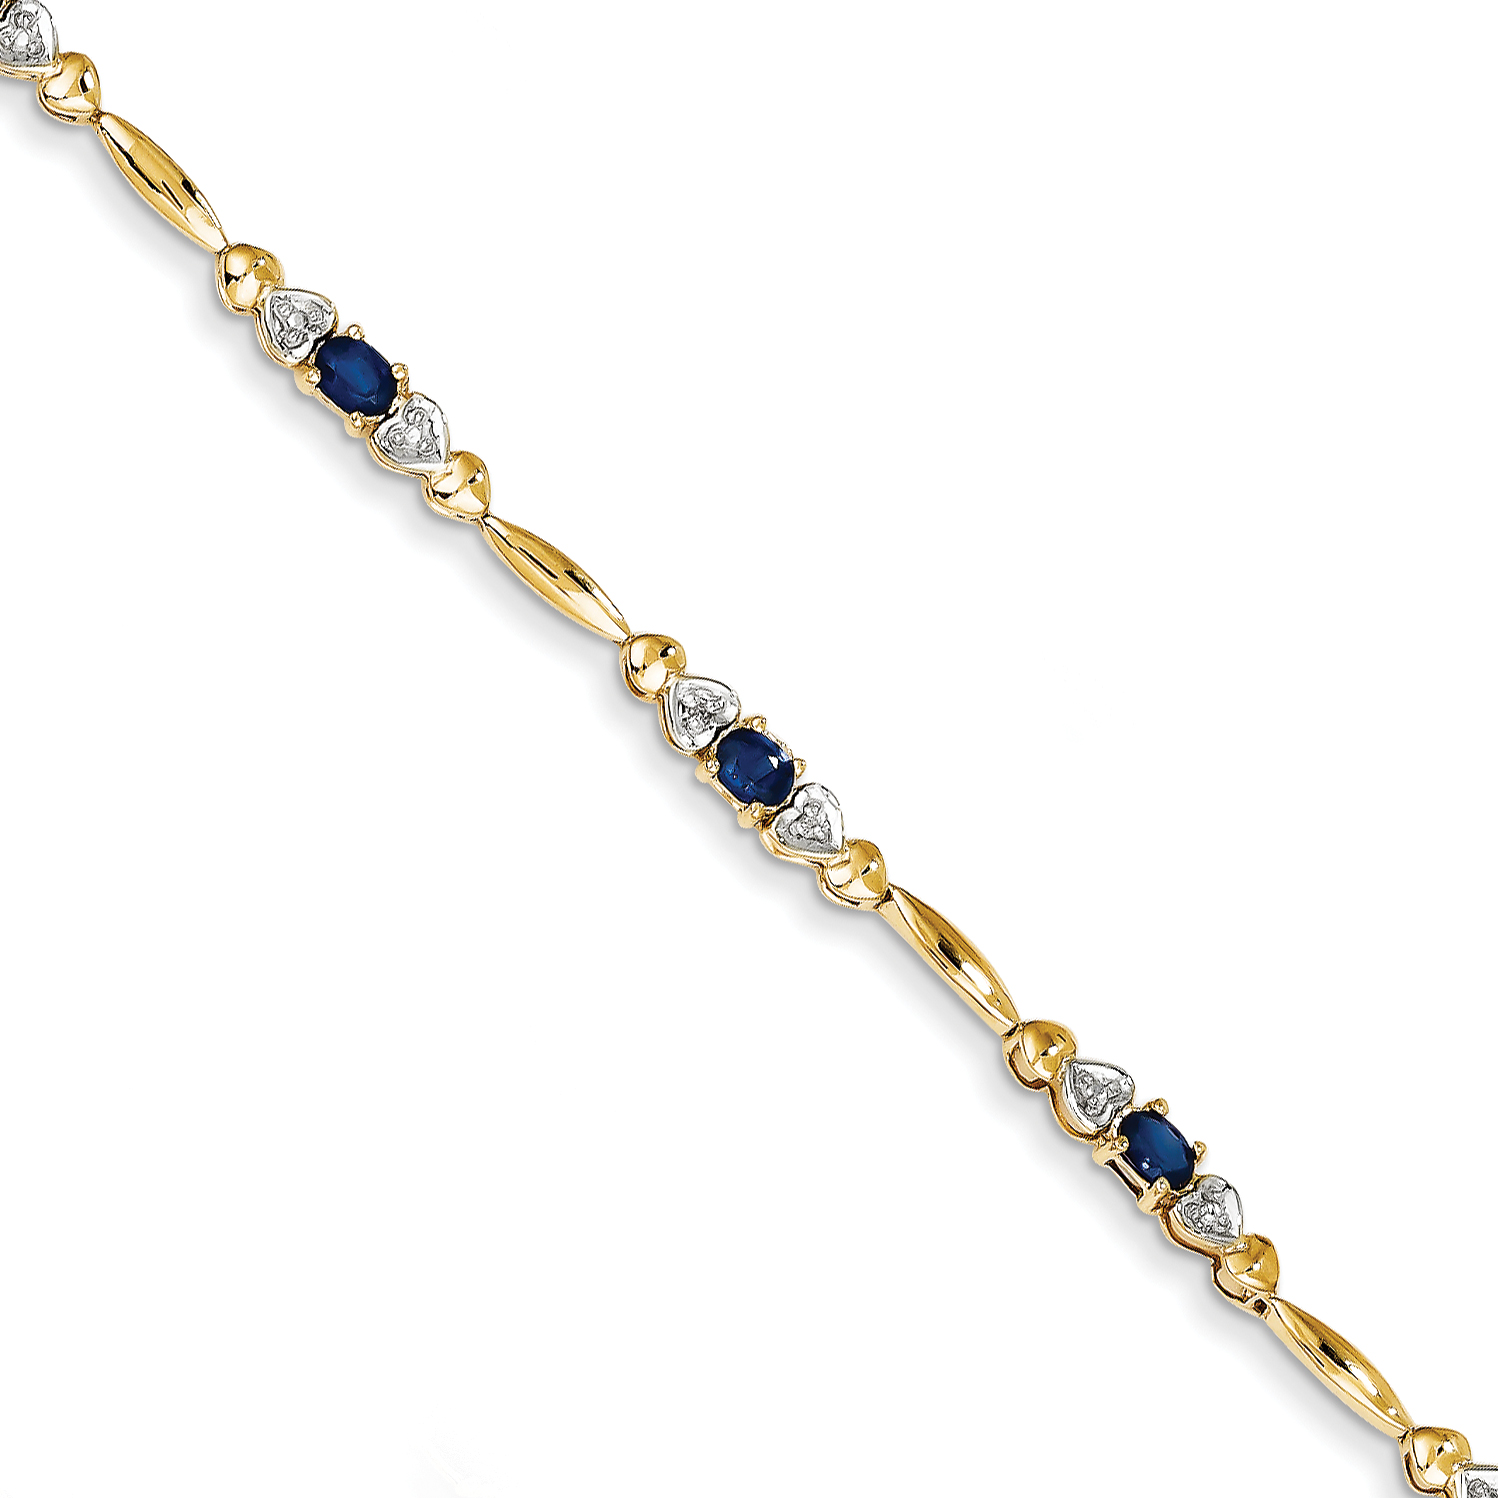 14k Yellow Gold Diamond and Sapphire Bracelet by